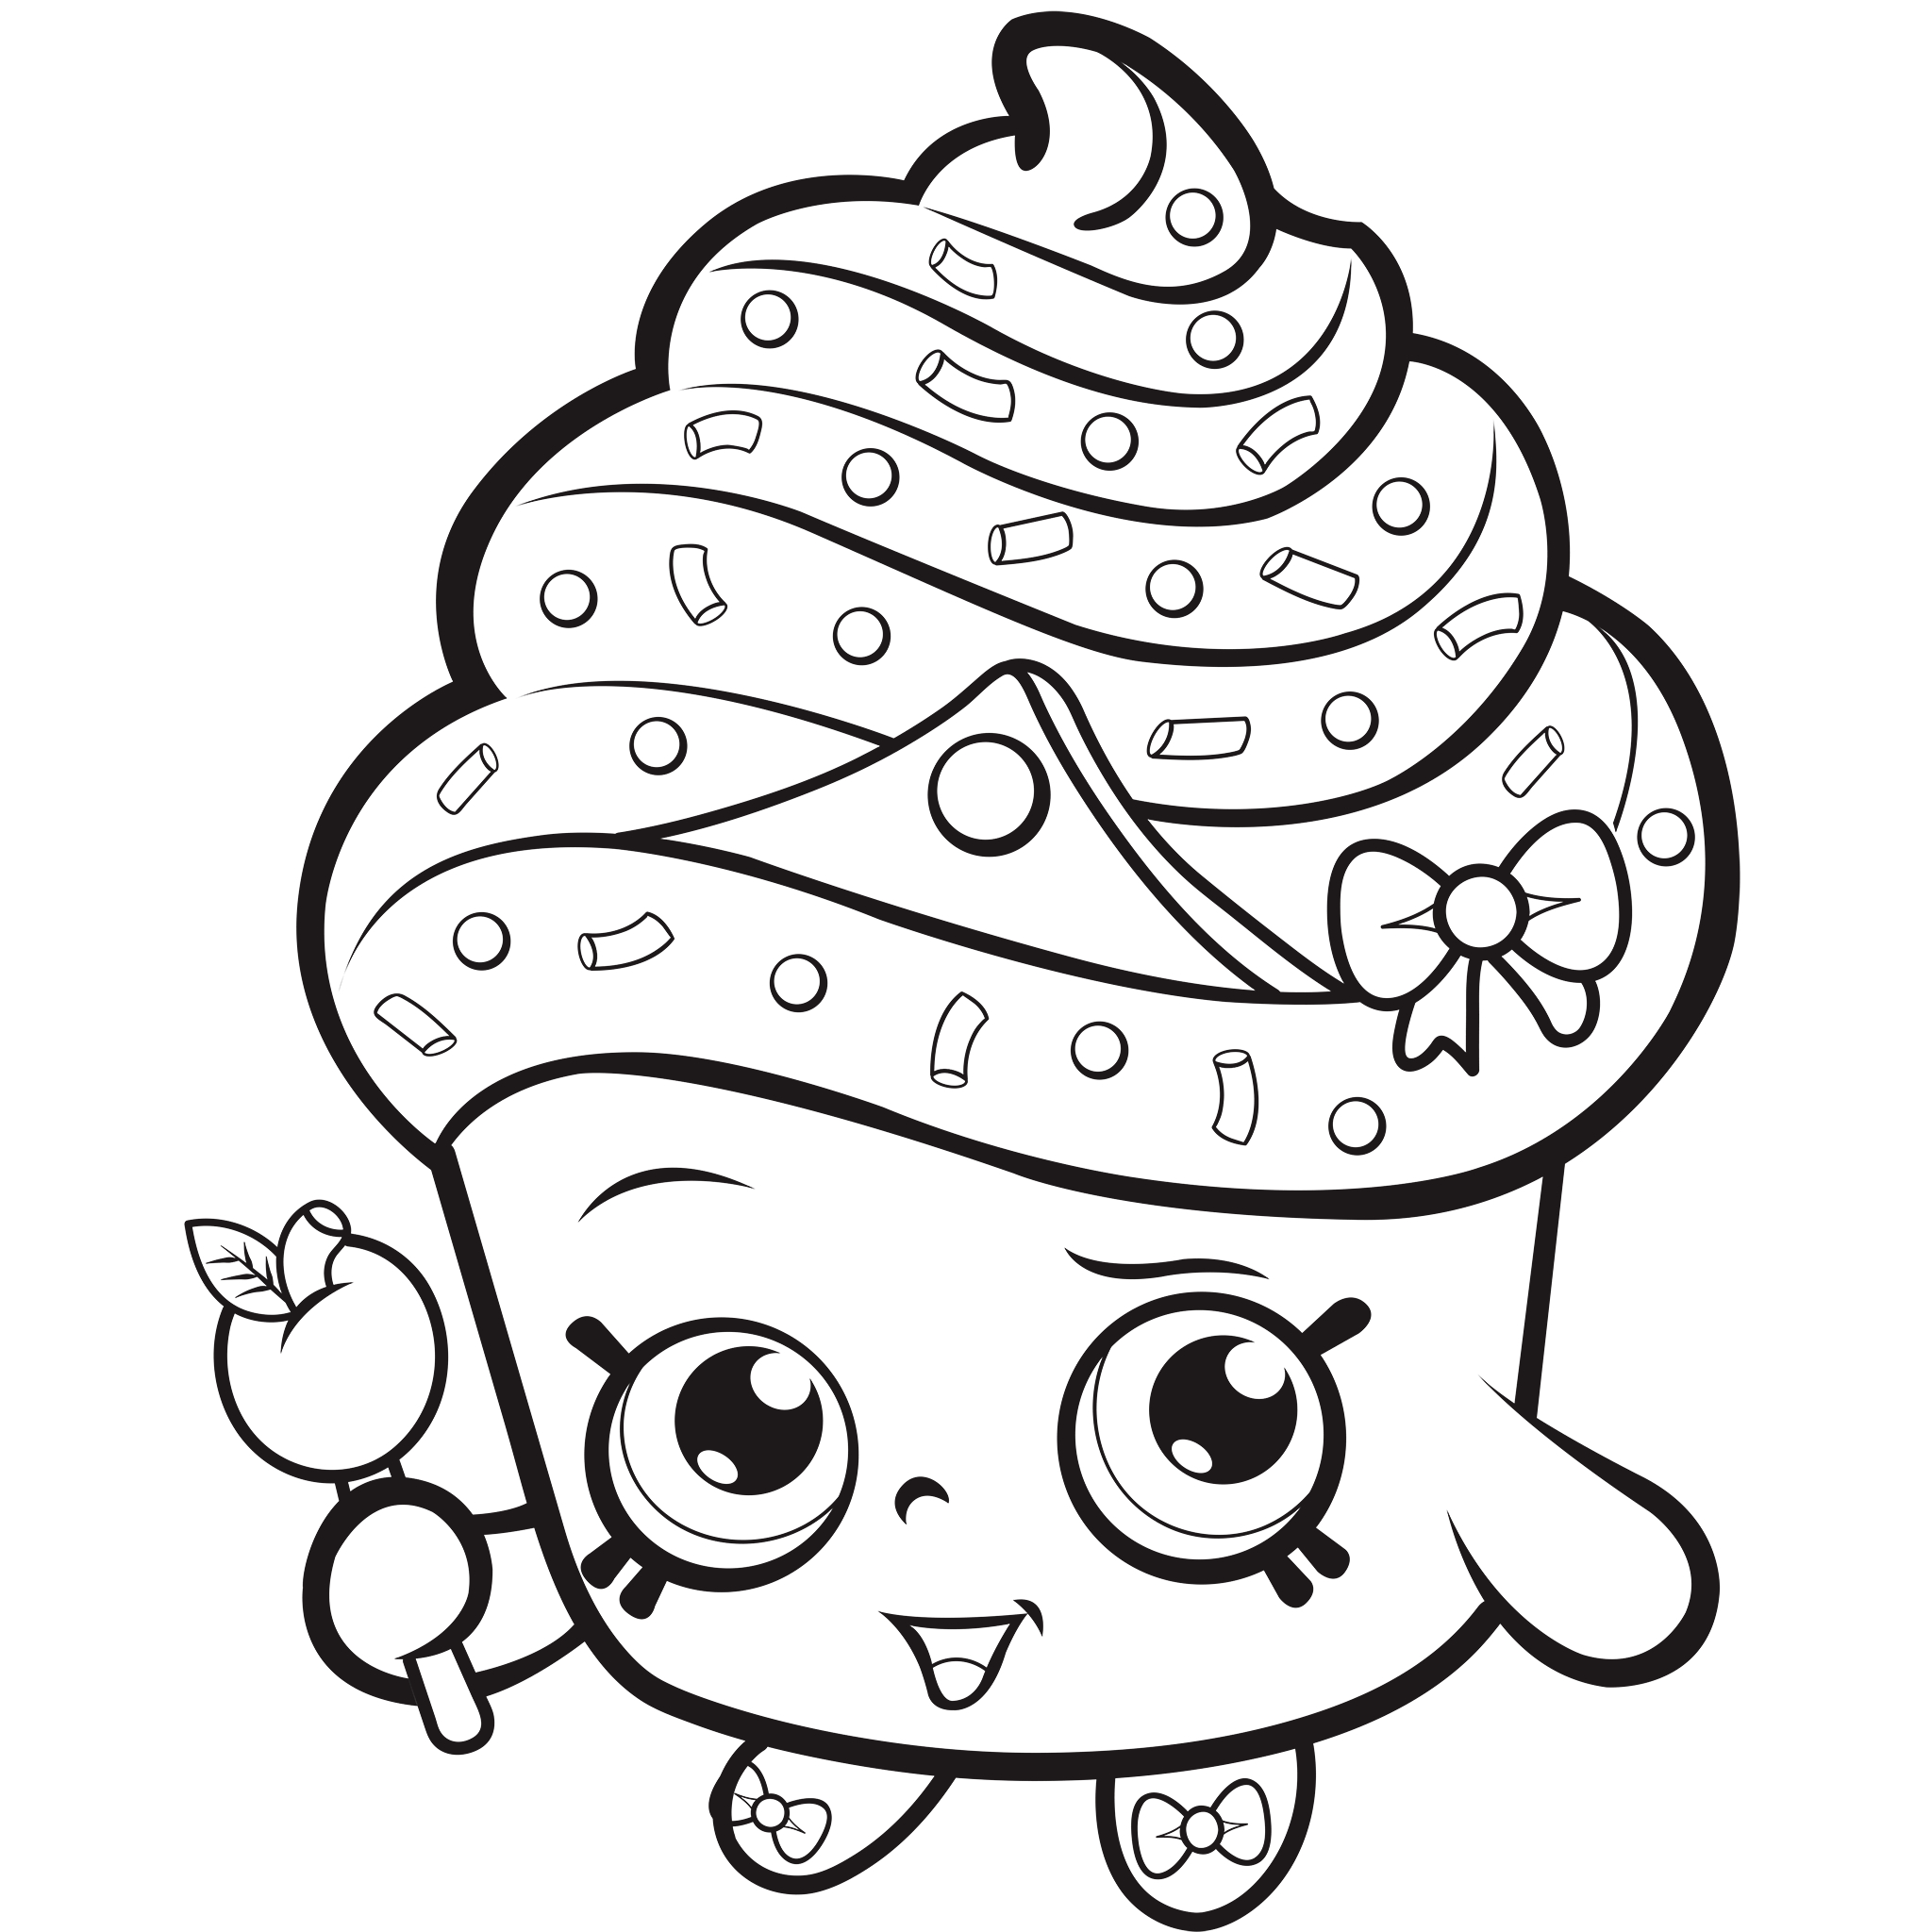 Shopkins Coloring Pages Printable 20r - Free For kids